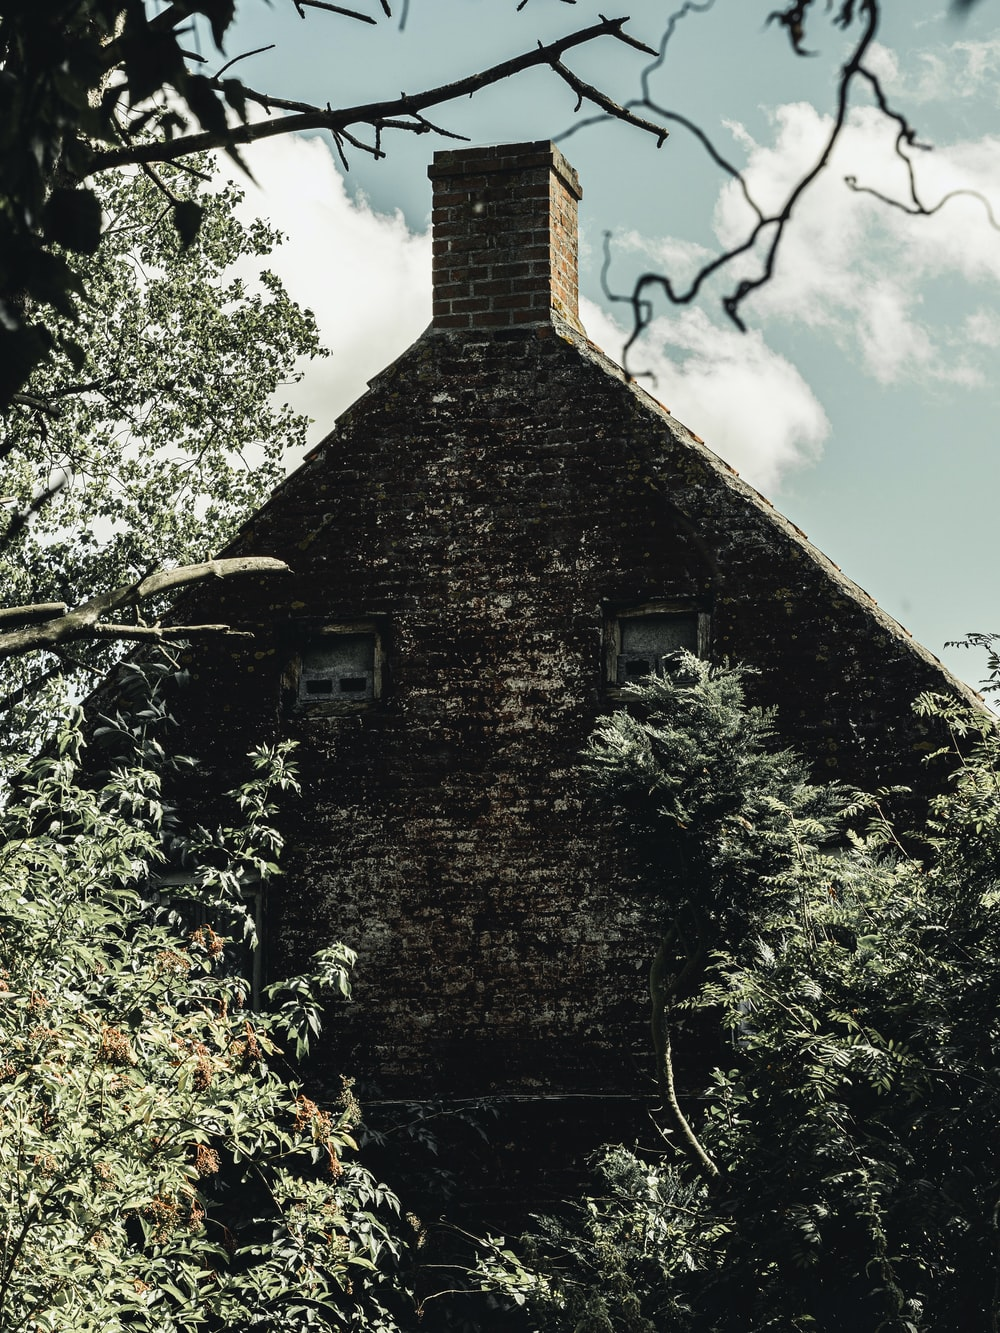 gray bricked house with chimney beside trees during daytime